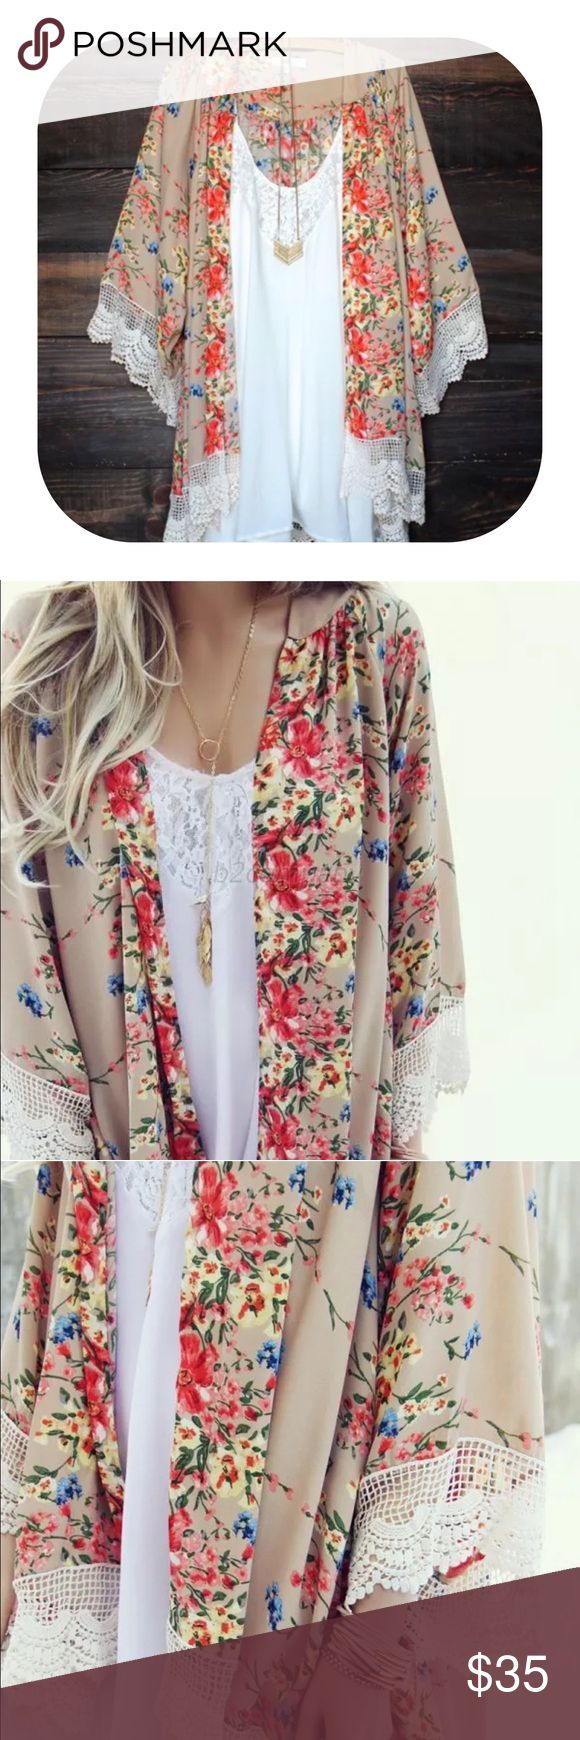 Spotted while shopping on Poshmark: floral print chiffon cardigan ...